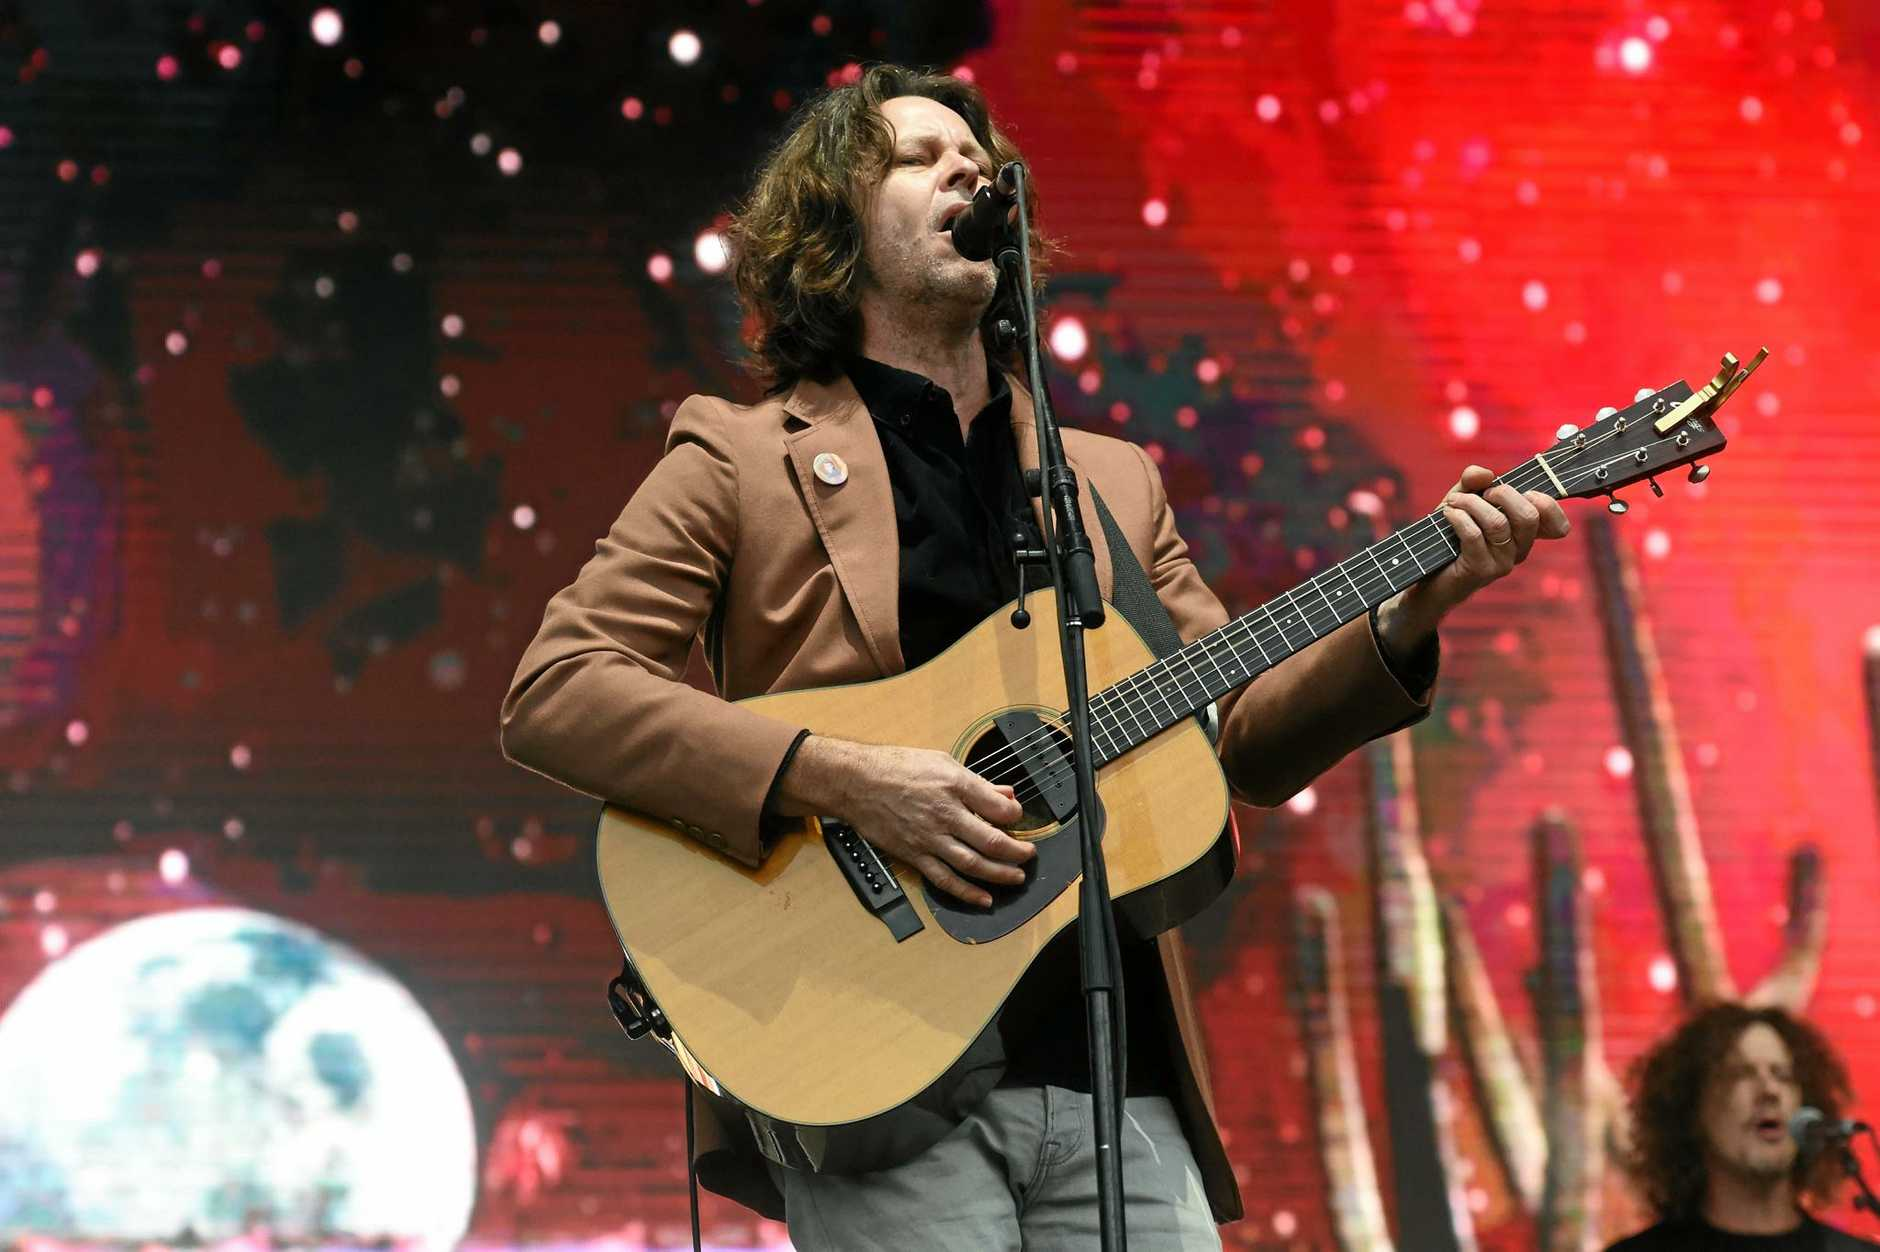 Bernard Fanning is an influential musician - and he's one of us.